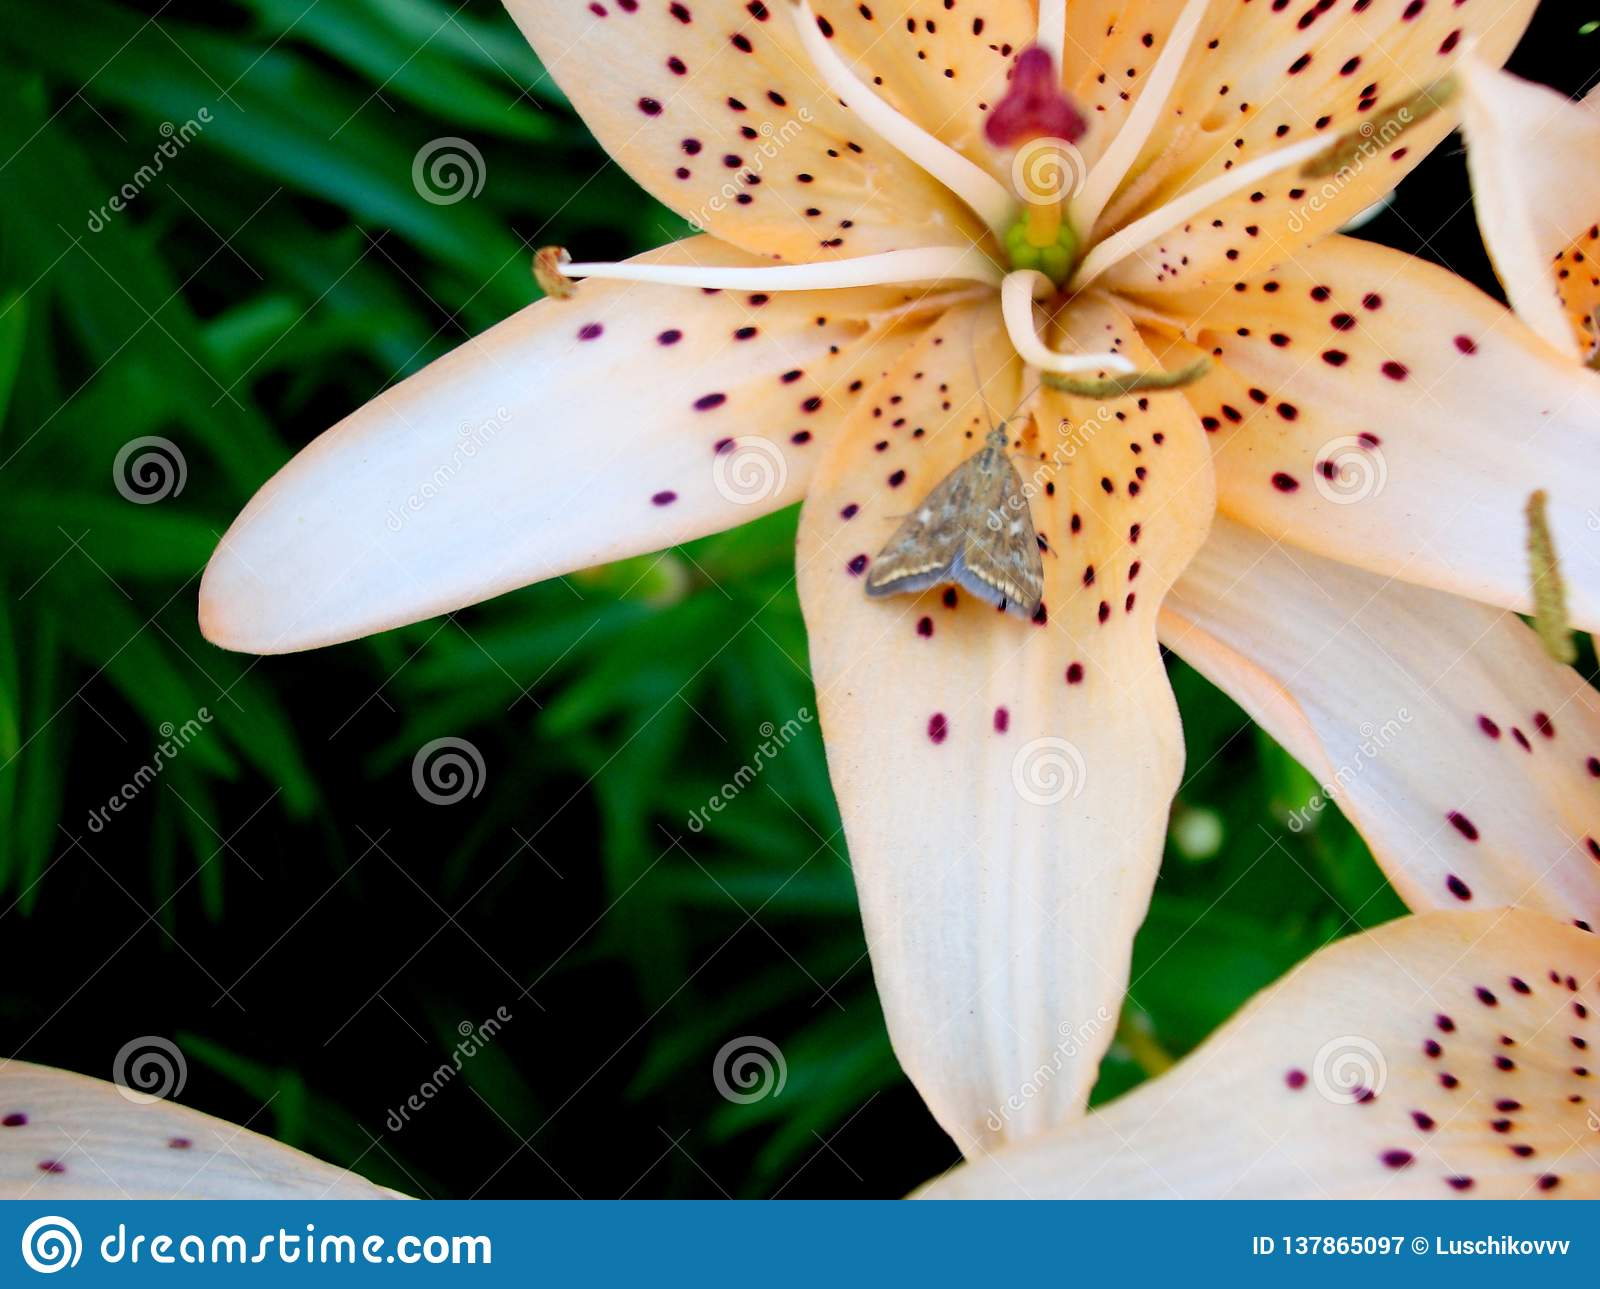 Lily with a butterfly on a flower.